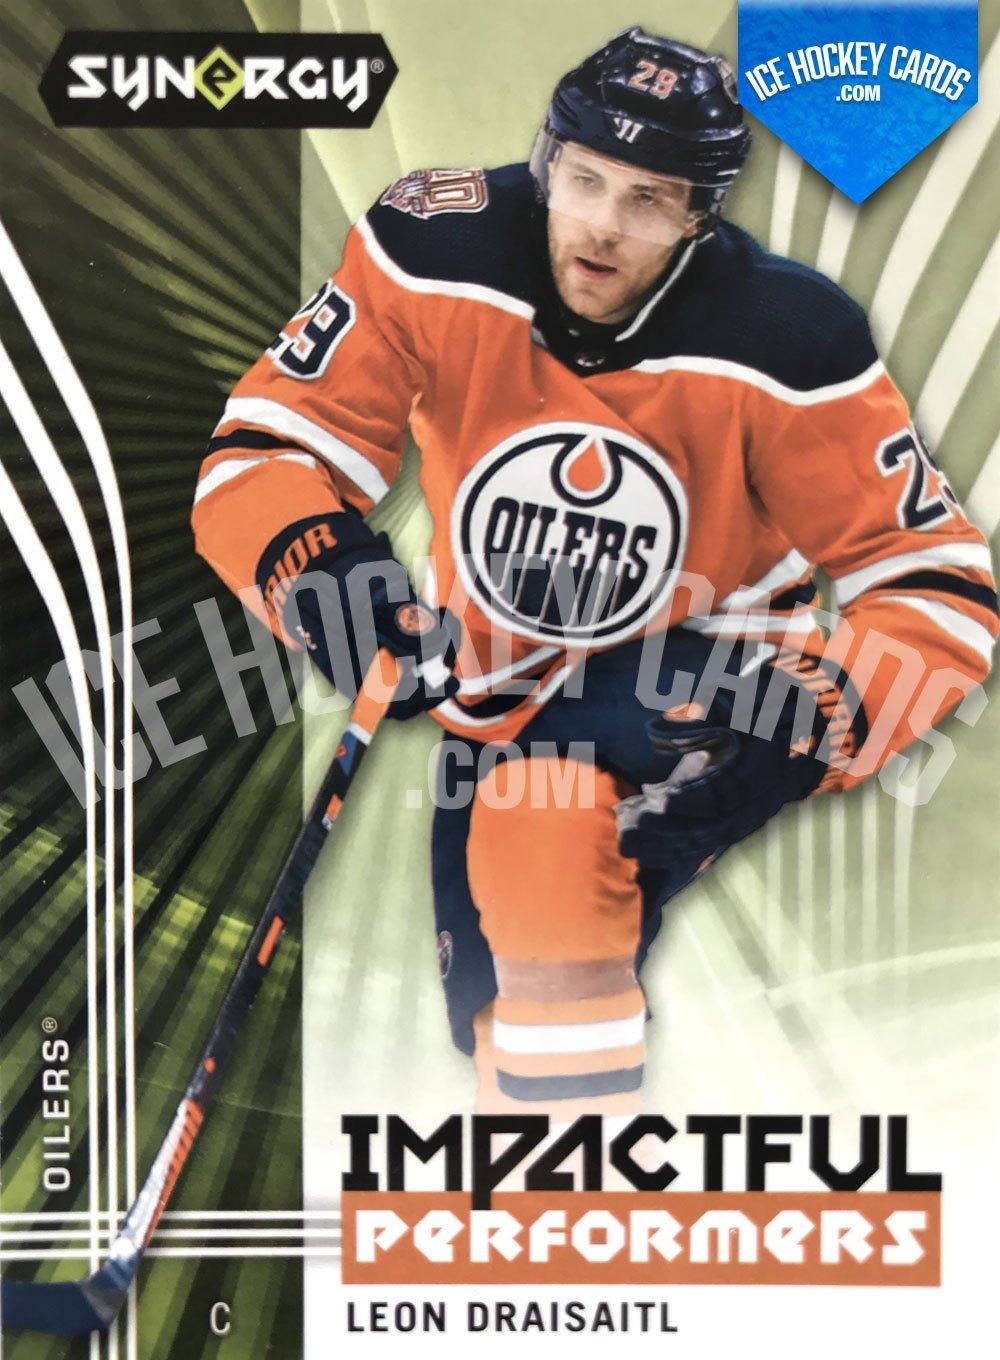 Upper Deck - Synergy 19-20 - Leon Draisaitl Impactful Performers